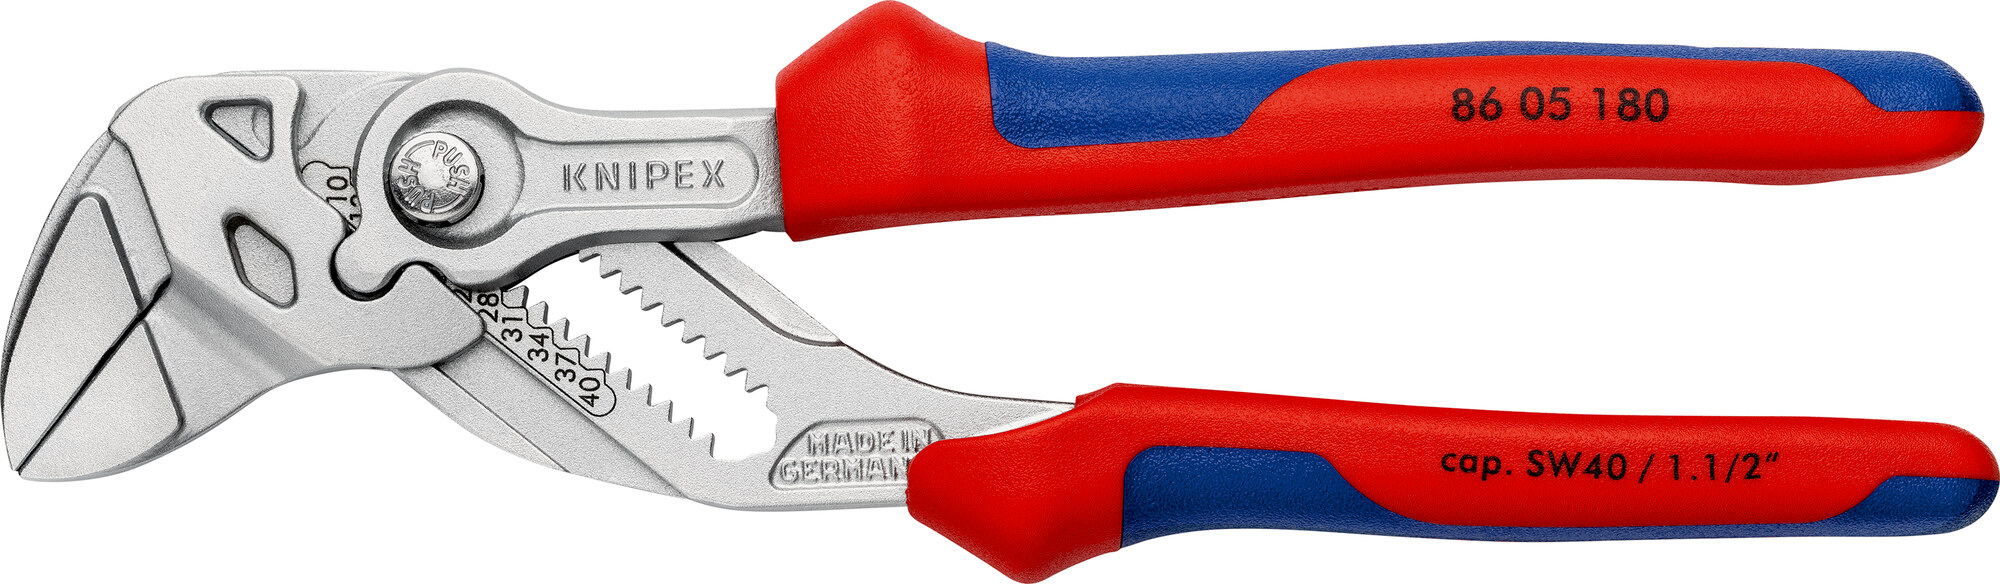 Knipex 180mm Adjustable Wrench Pliers 86 02 180